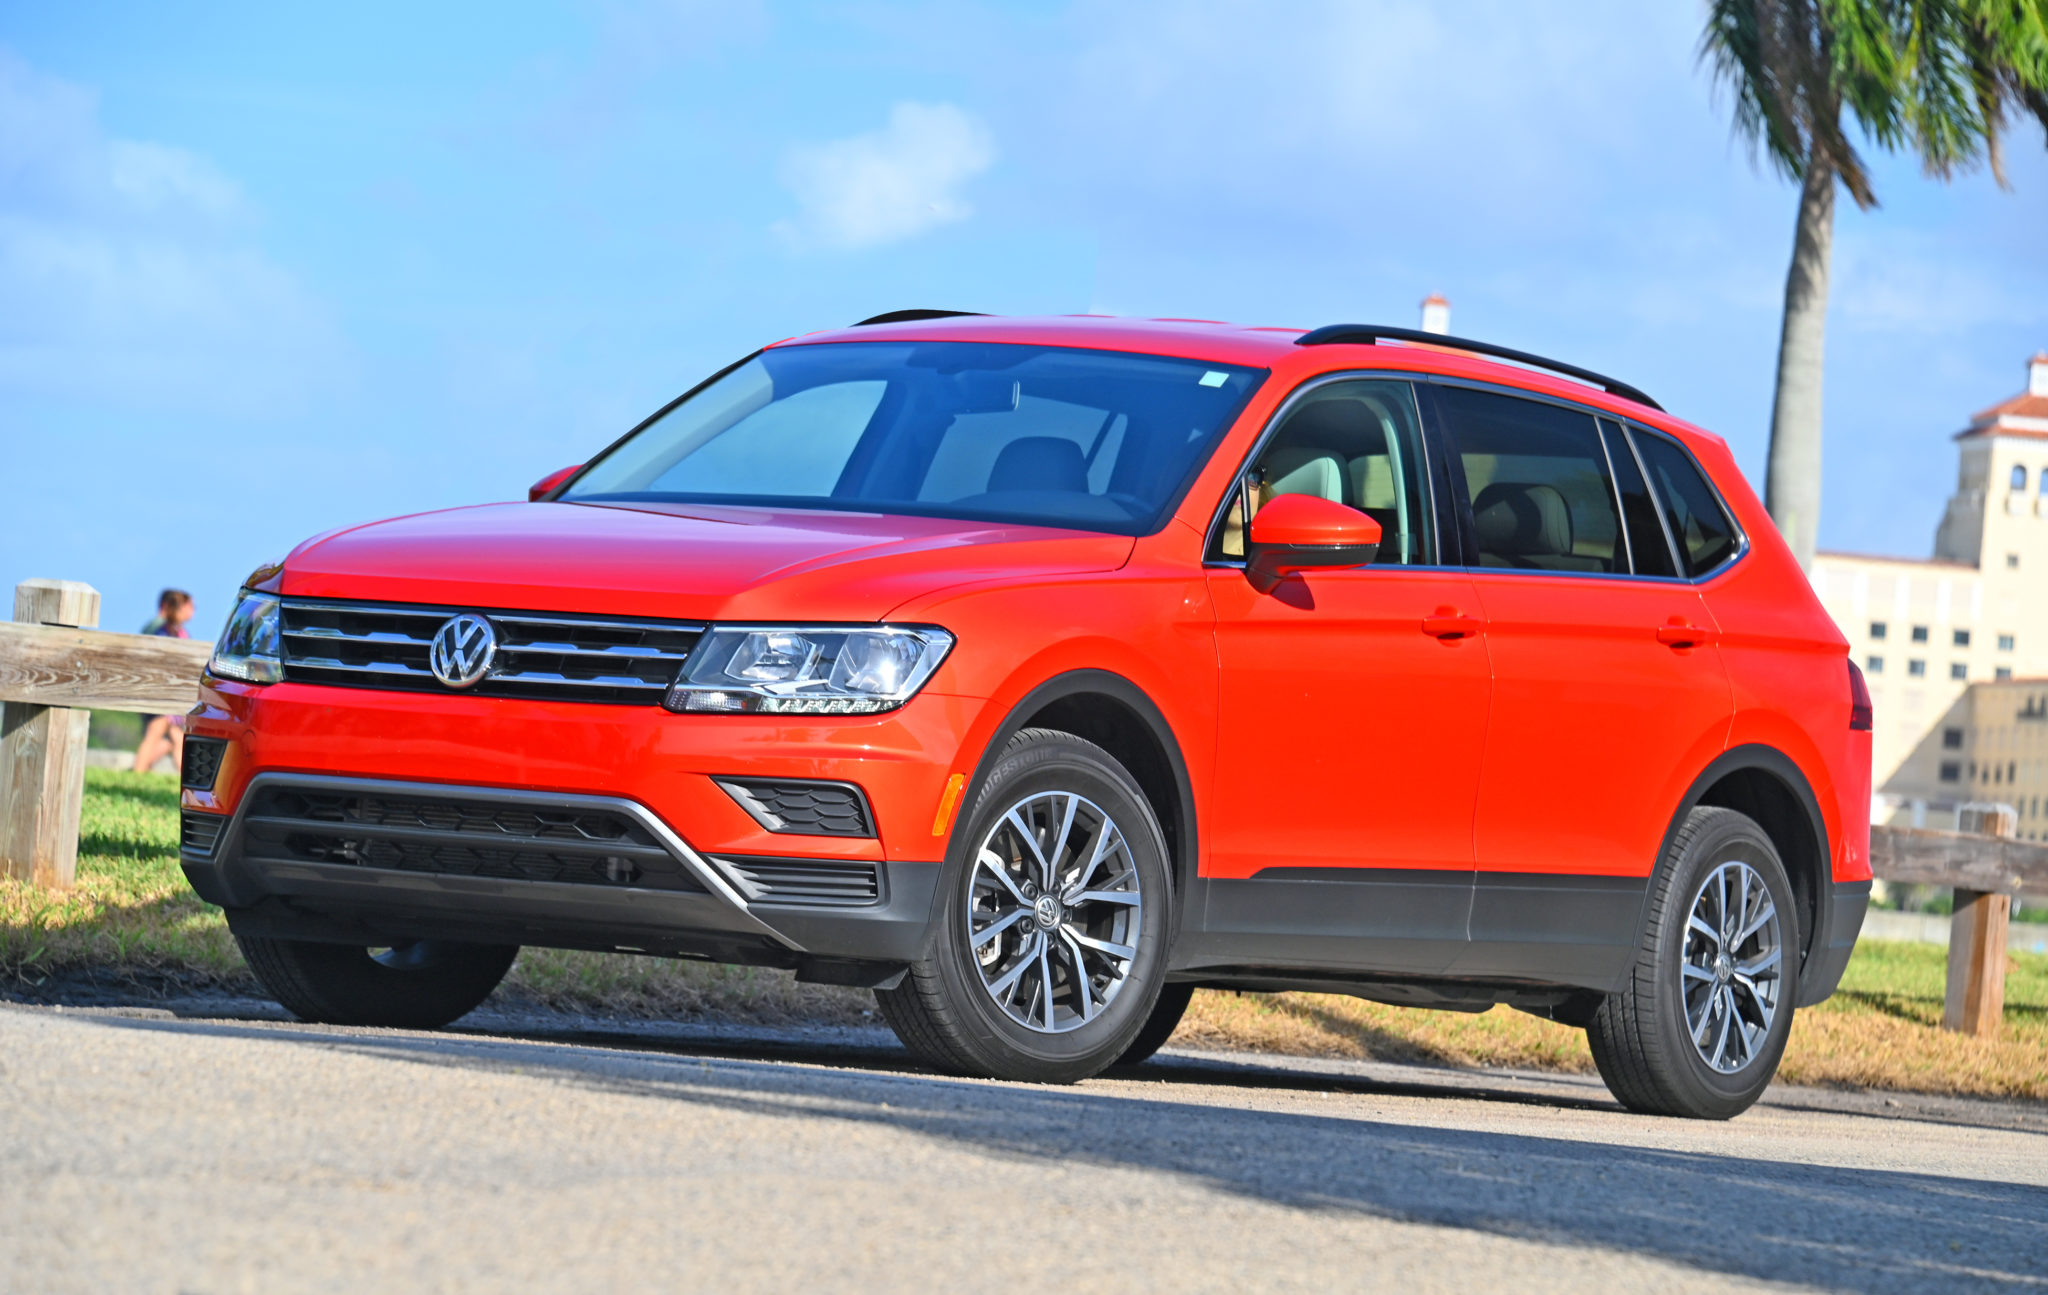 The Volkswagen Tiguan SE Review.